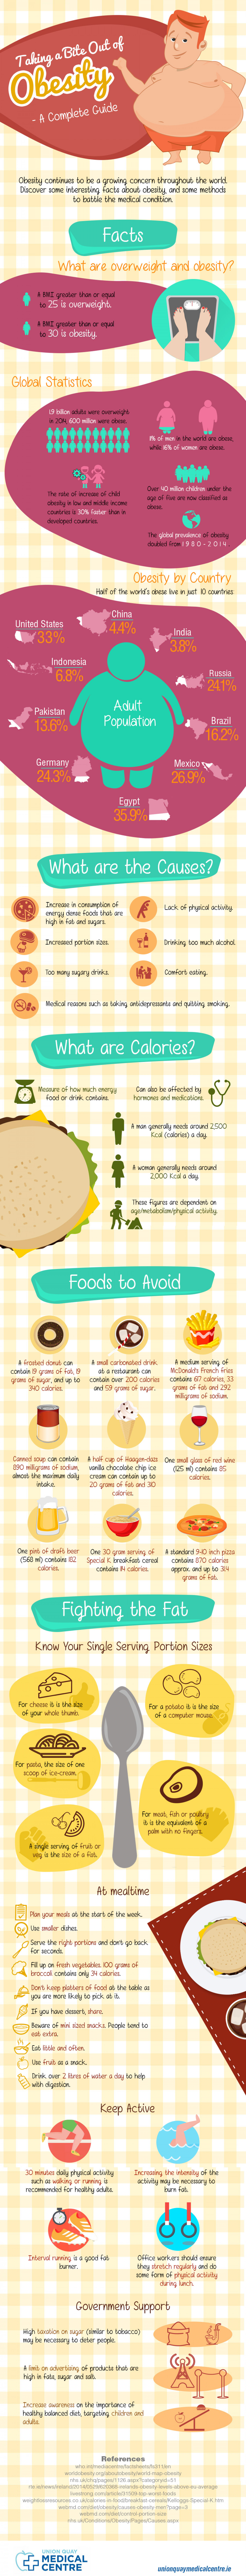 Taking a Bite out of Obesity Infographic